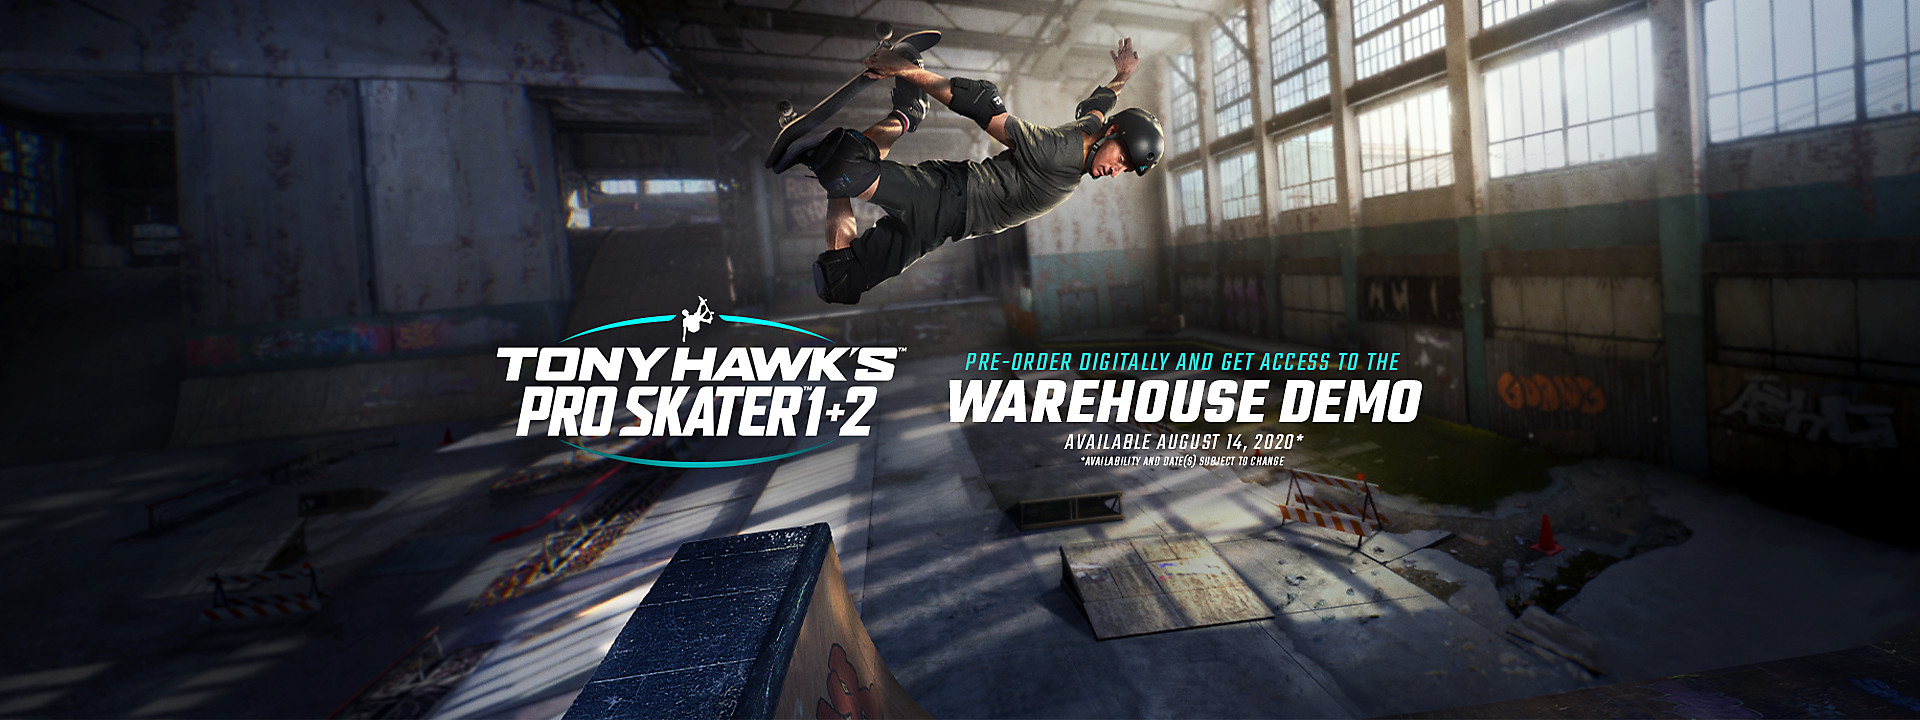 Tony Hawk's Pro Skater 1 + 2 - Warehouse Demo Now Available